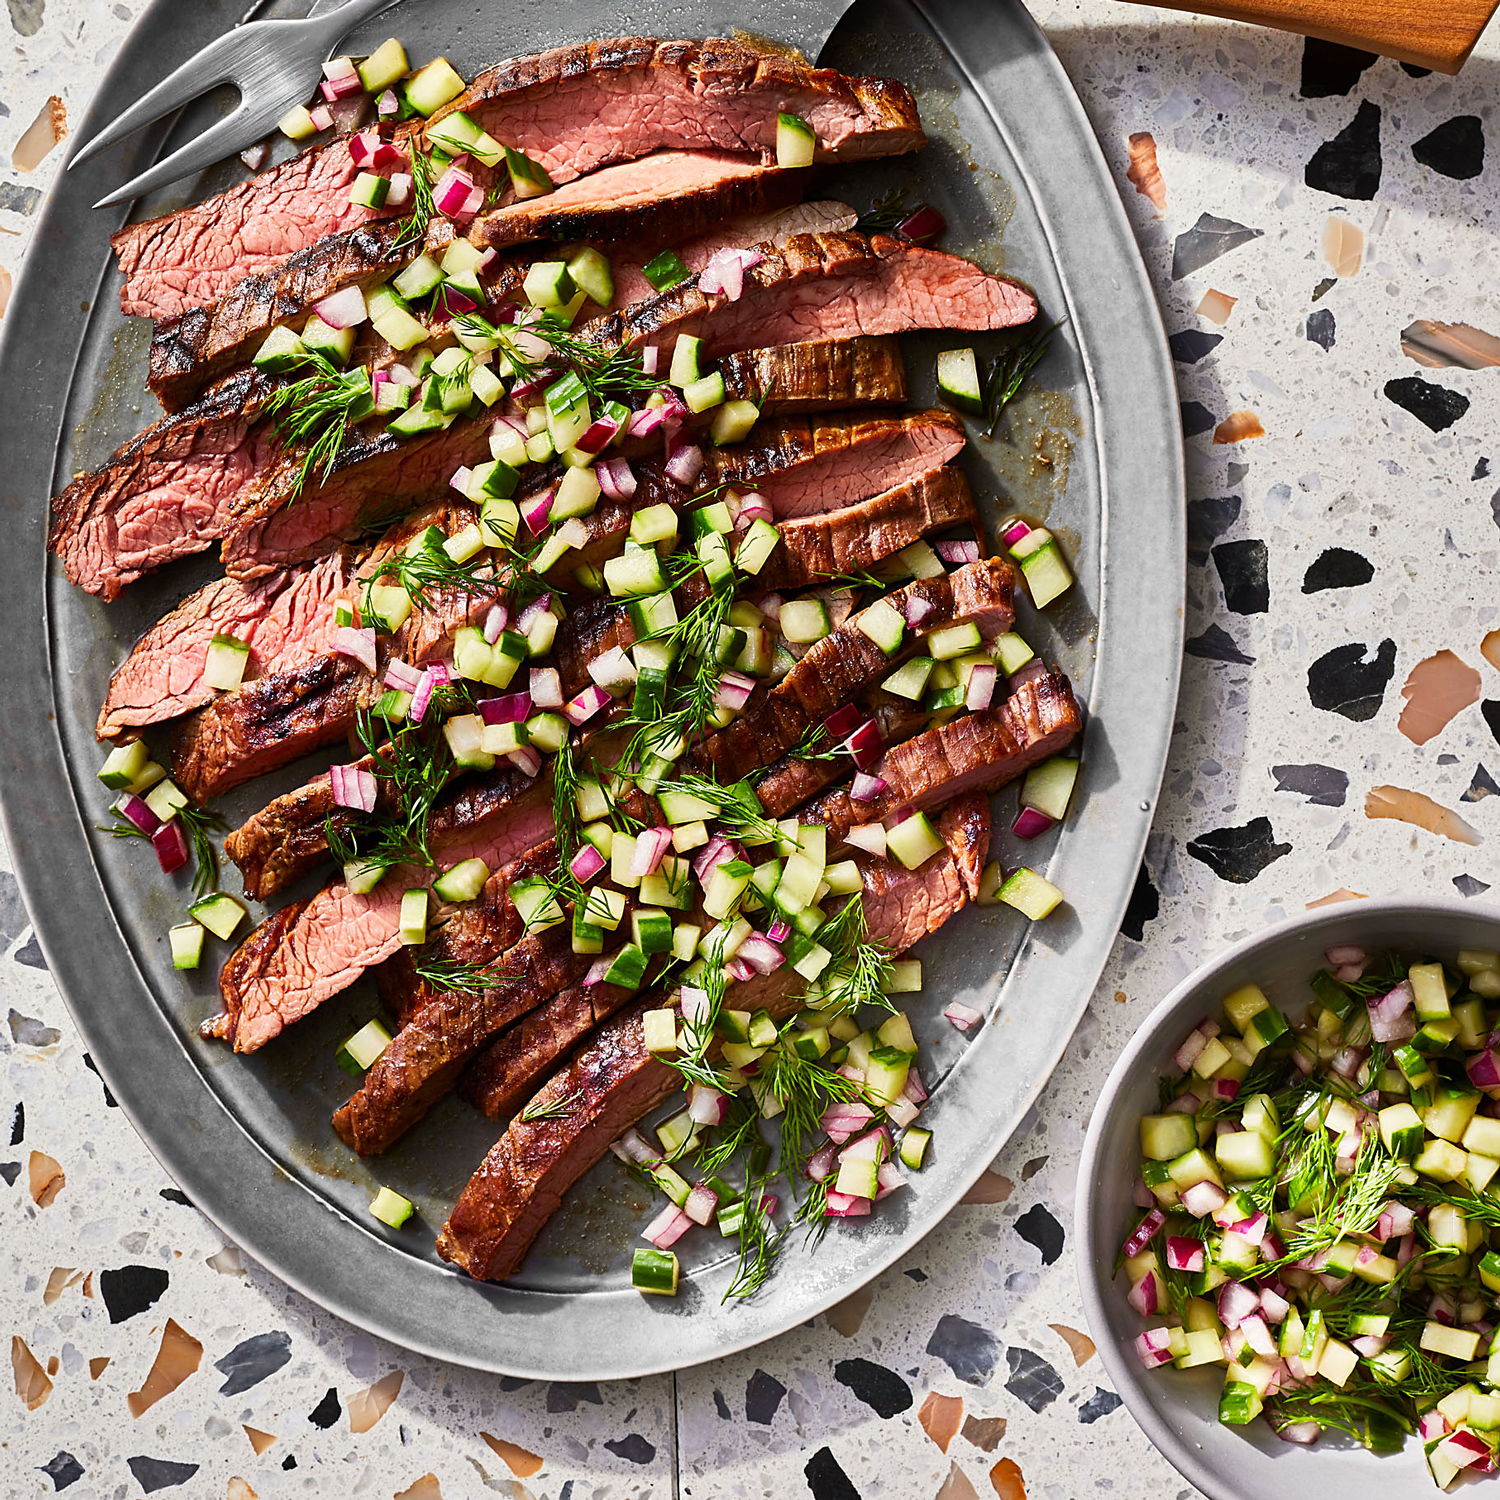 plate of Grilled Flank Steak with bowl of Cucumber-Dill Salsa